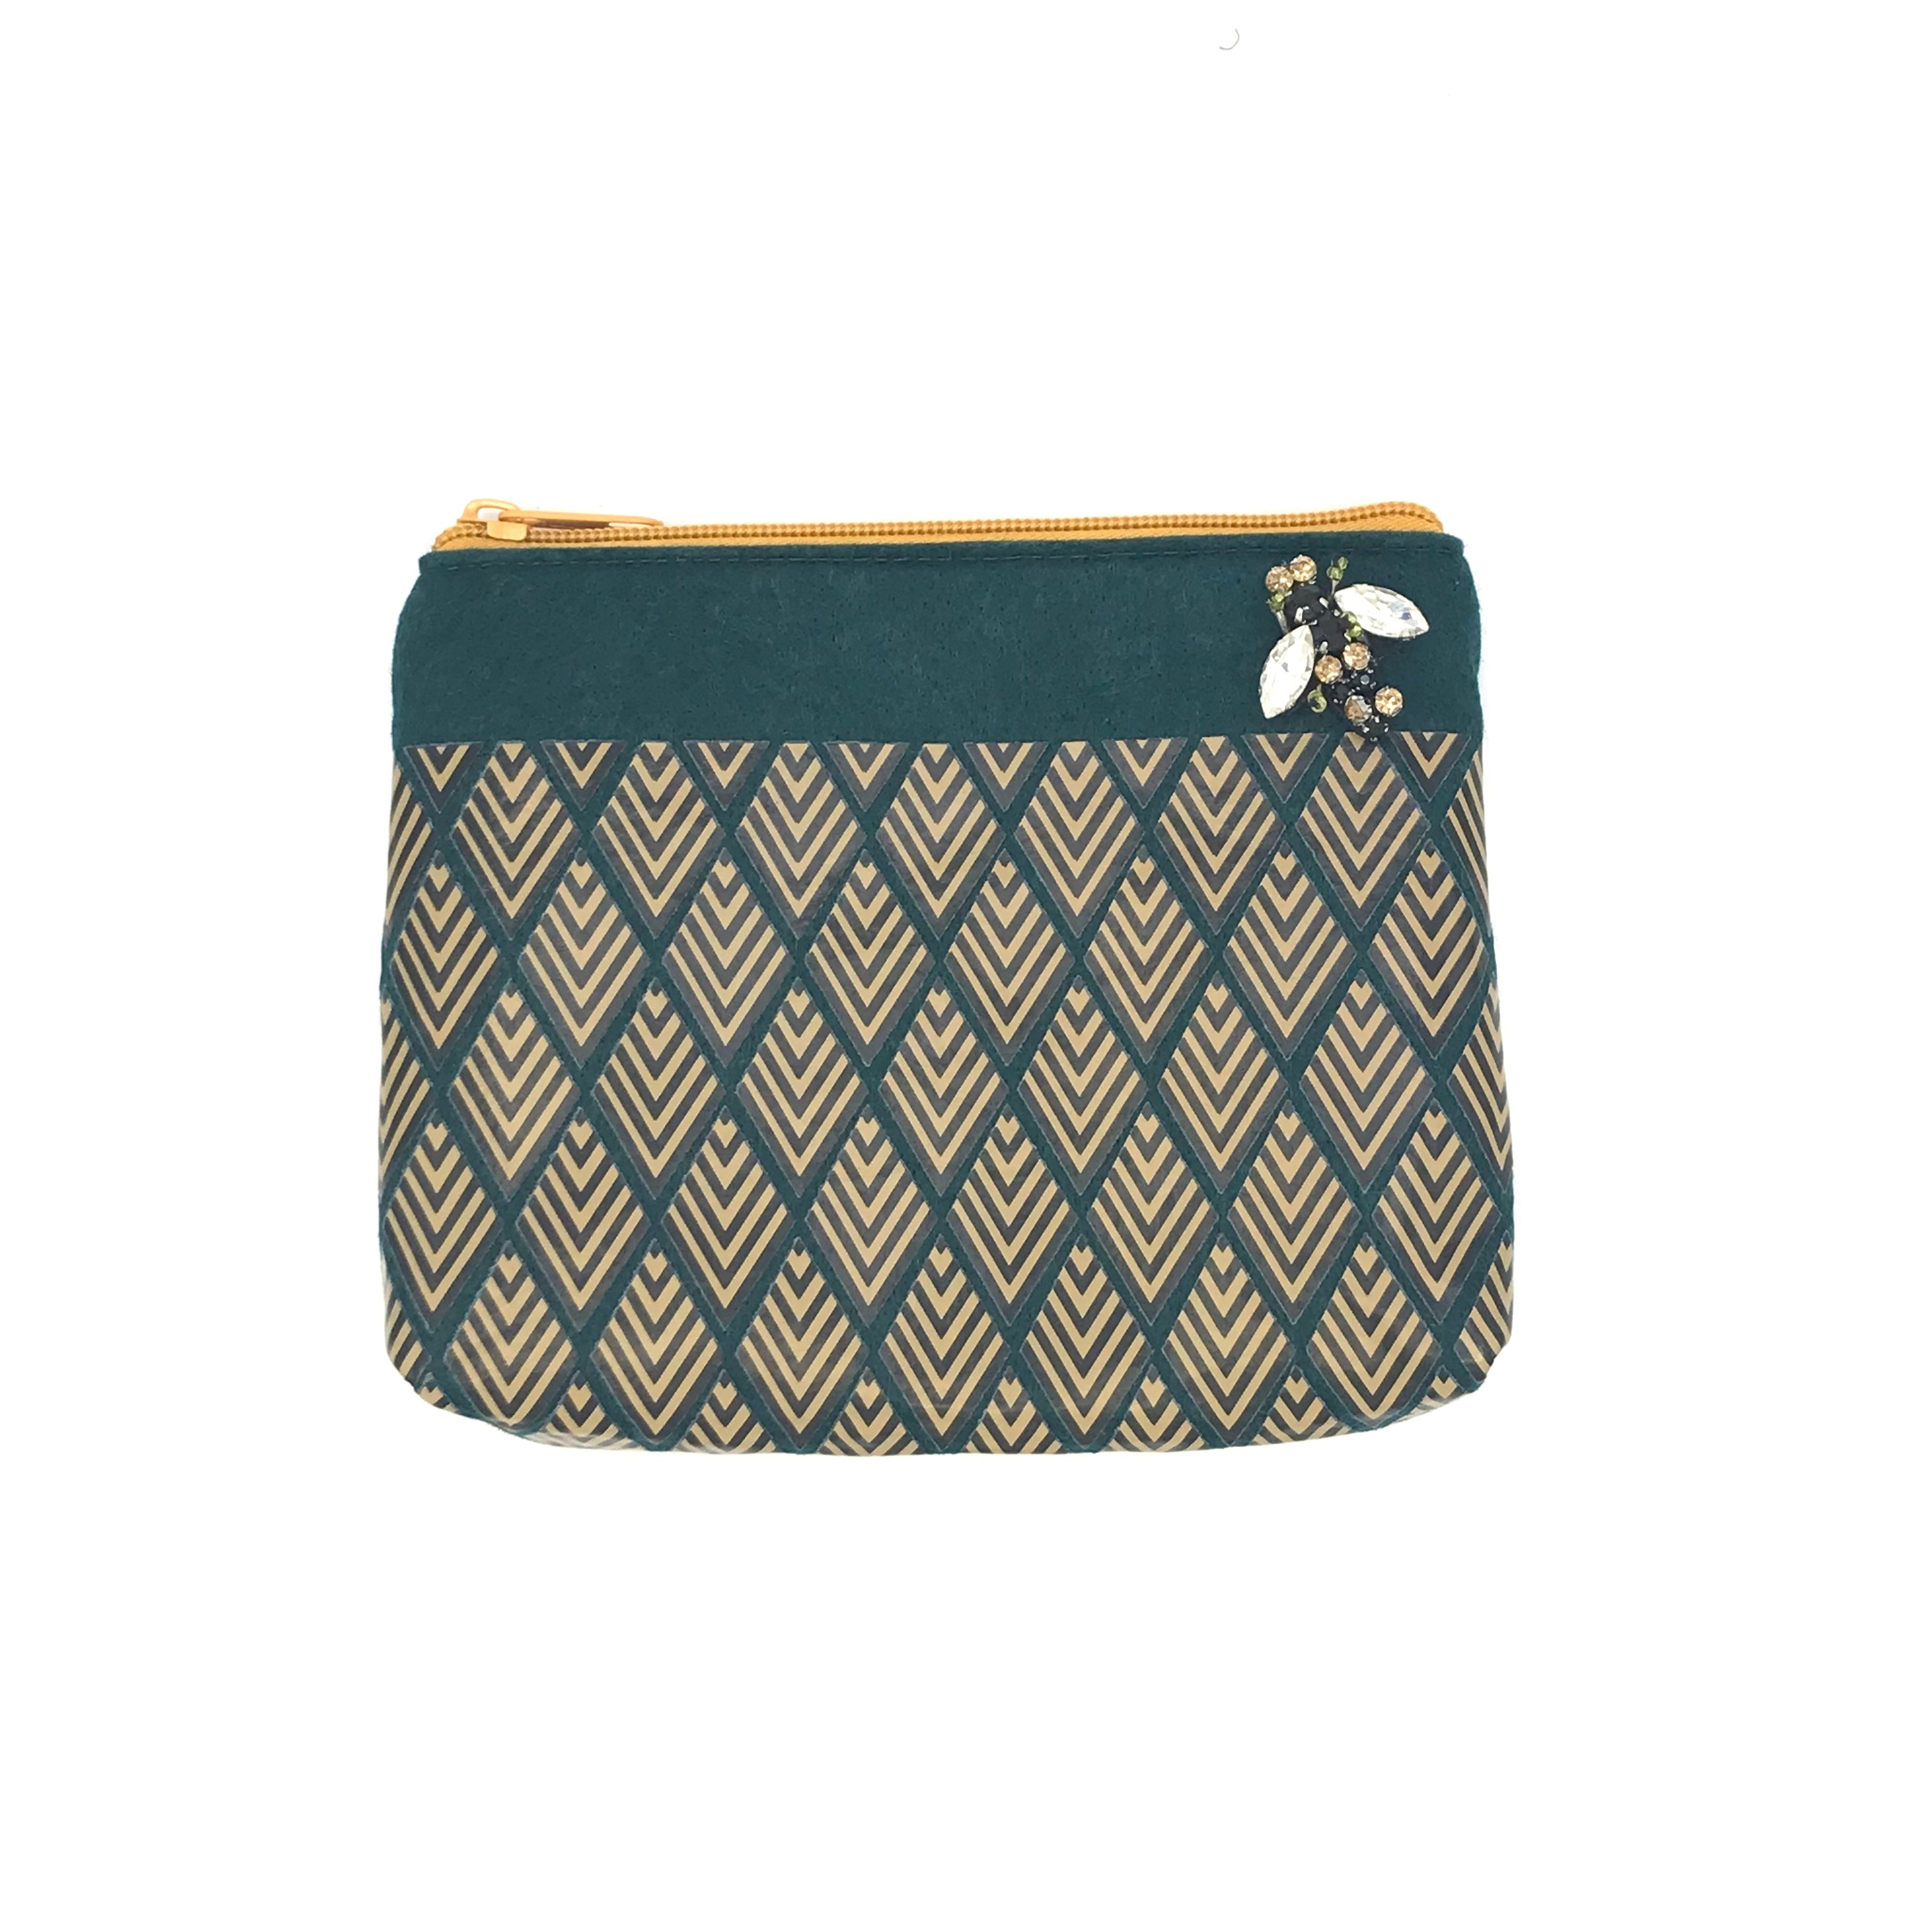 Deco print pouch in teal